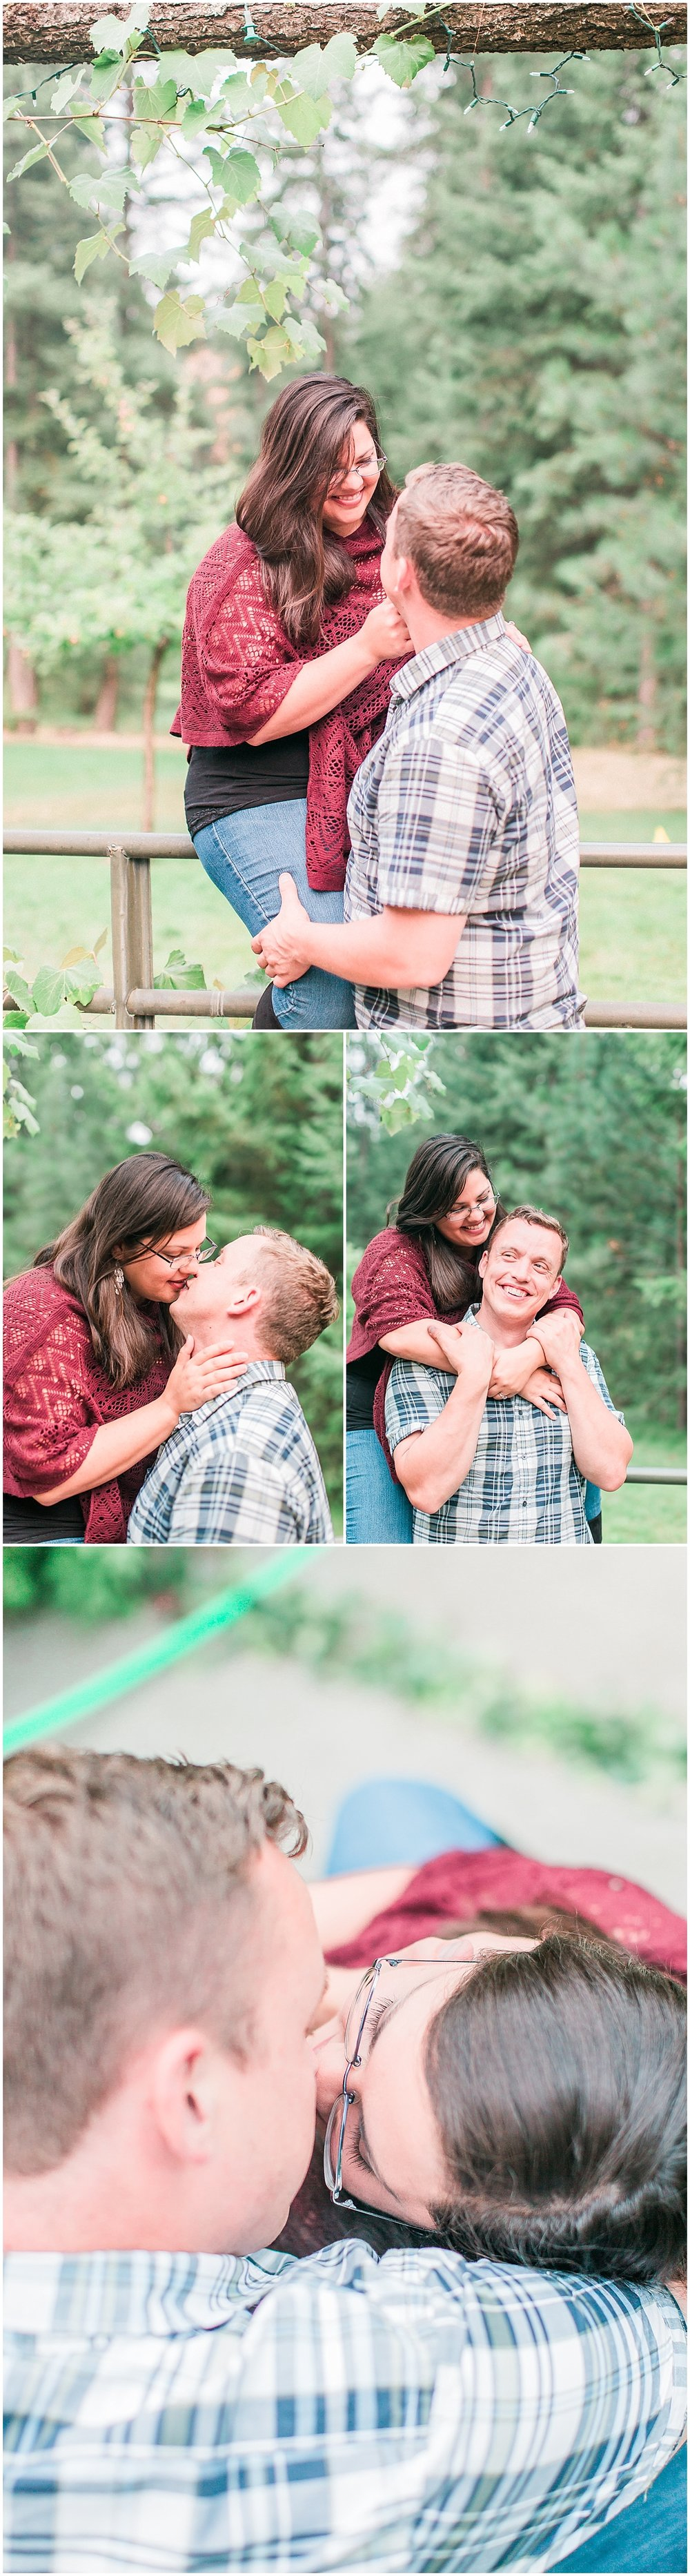 Backyard engagement photos